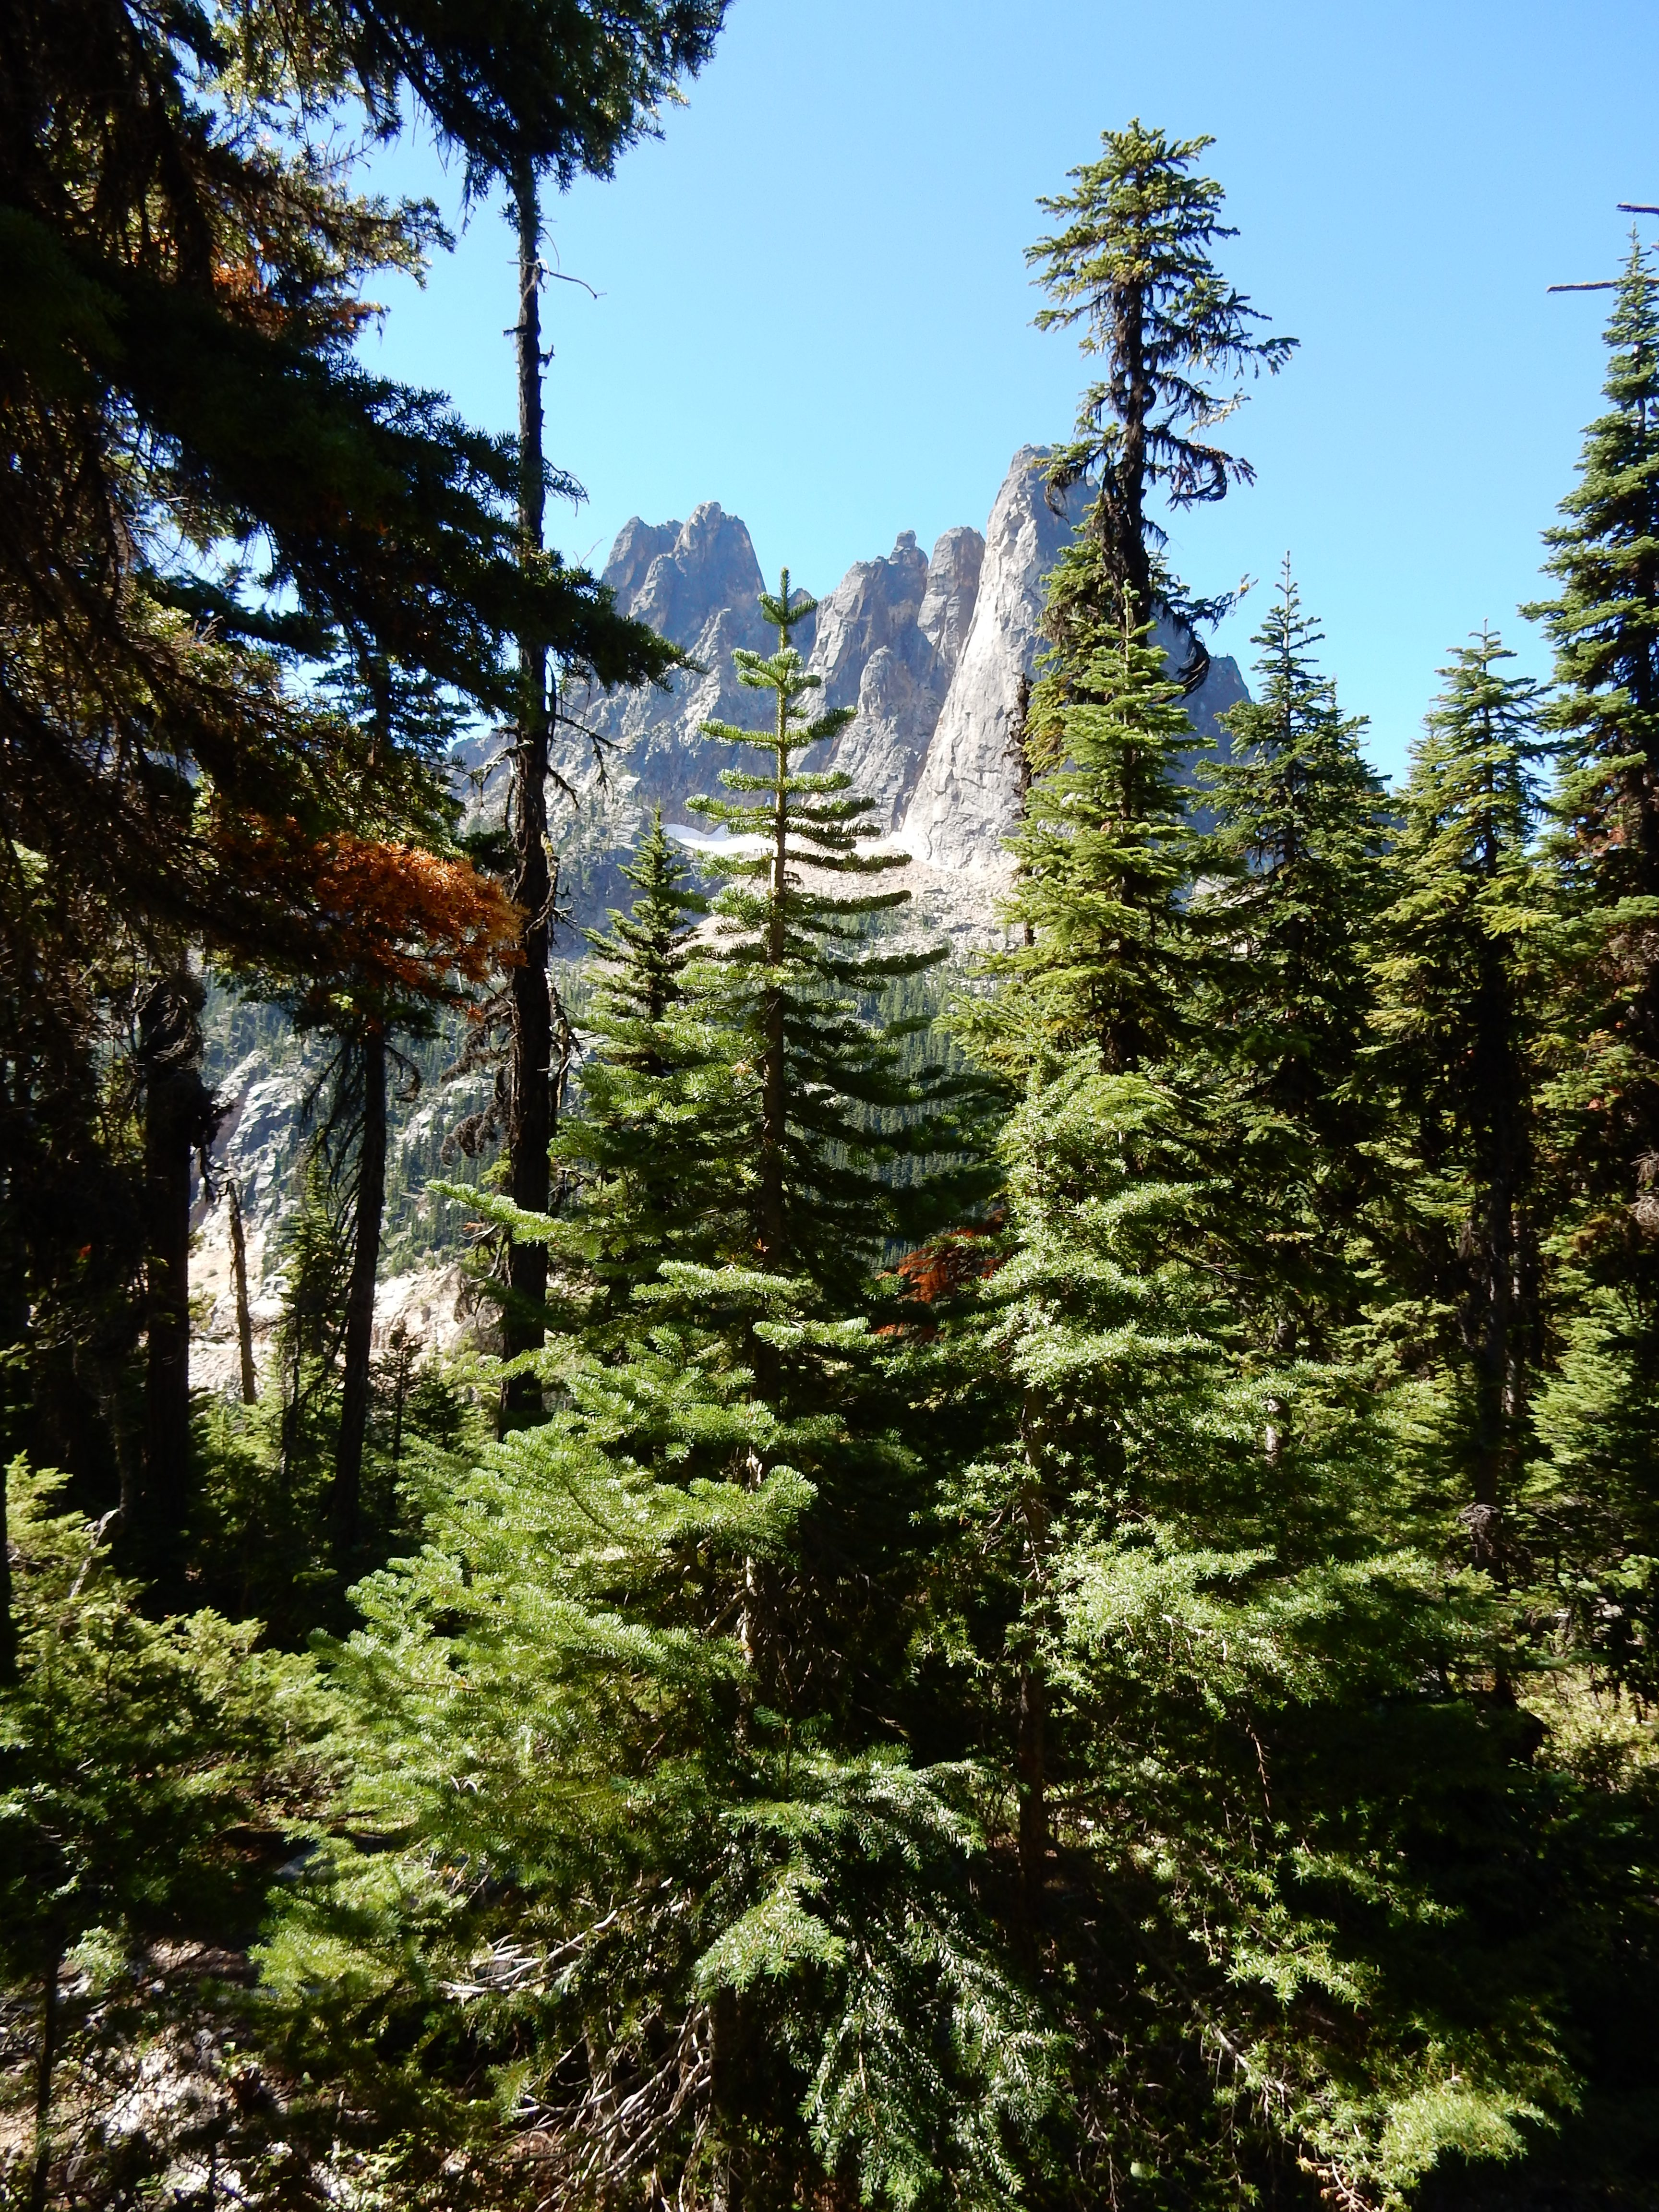 A view of the mountains from the path to the Washington Pass overlook.